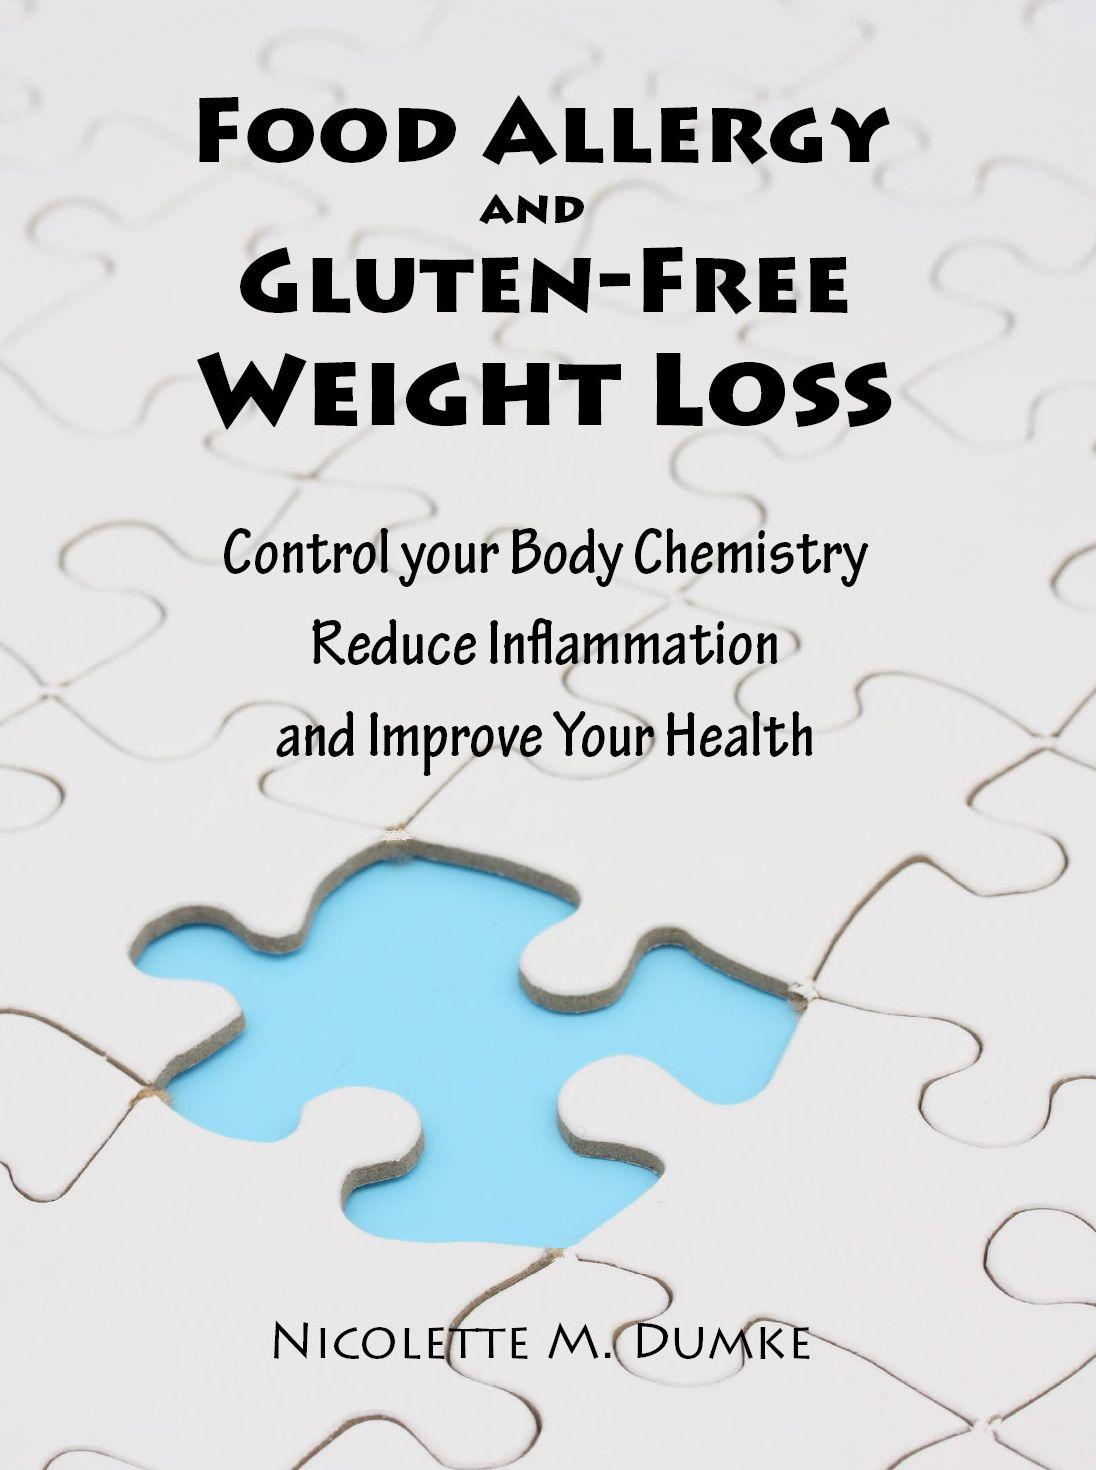 Food Allergy and Gluten-Free Weight Loss: Control Your Body Chemistry, Reduce Inflammation and Improve Your Health EB2370003239751